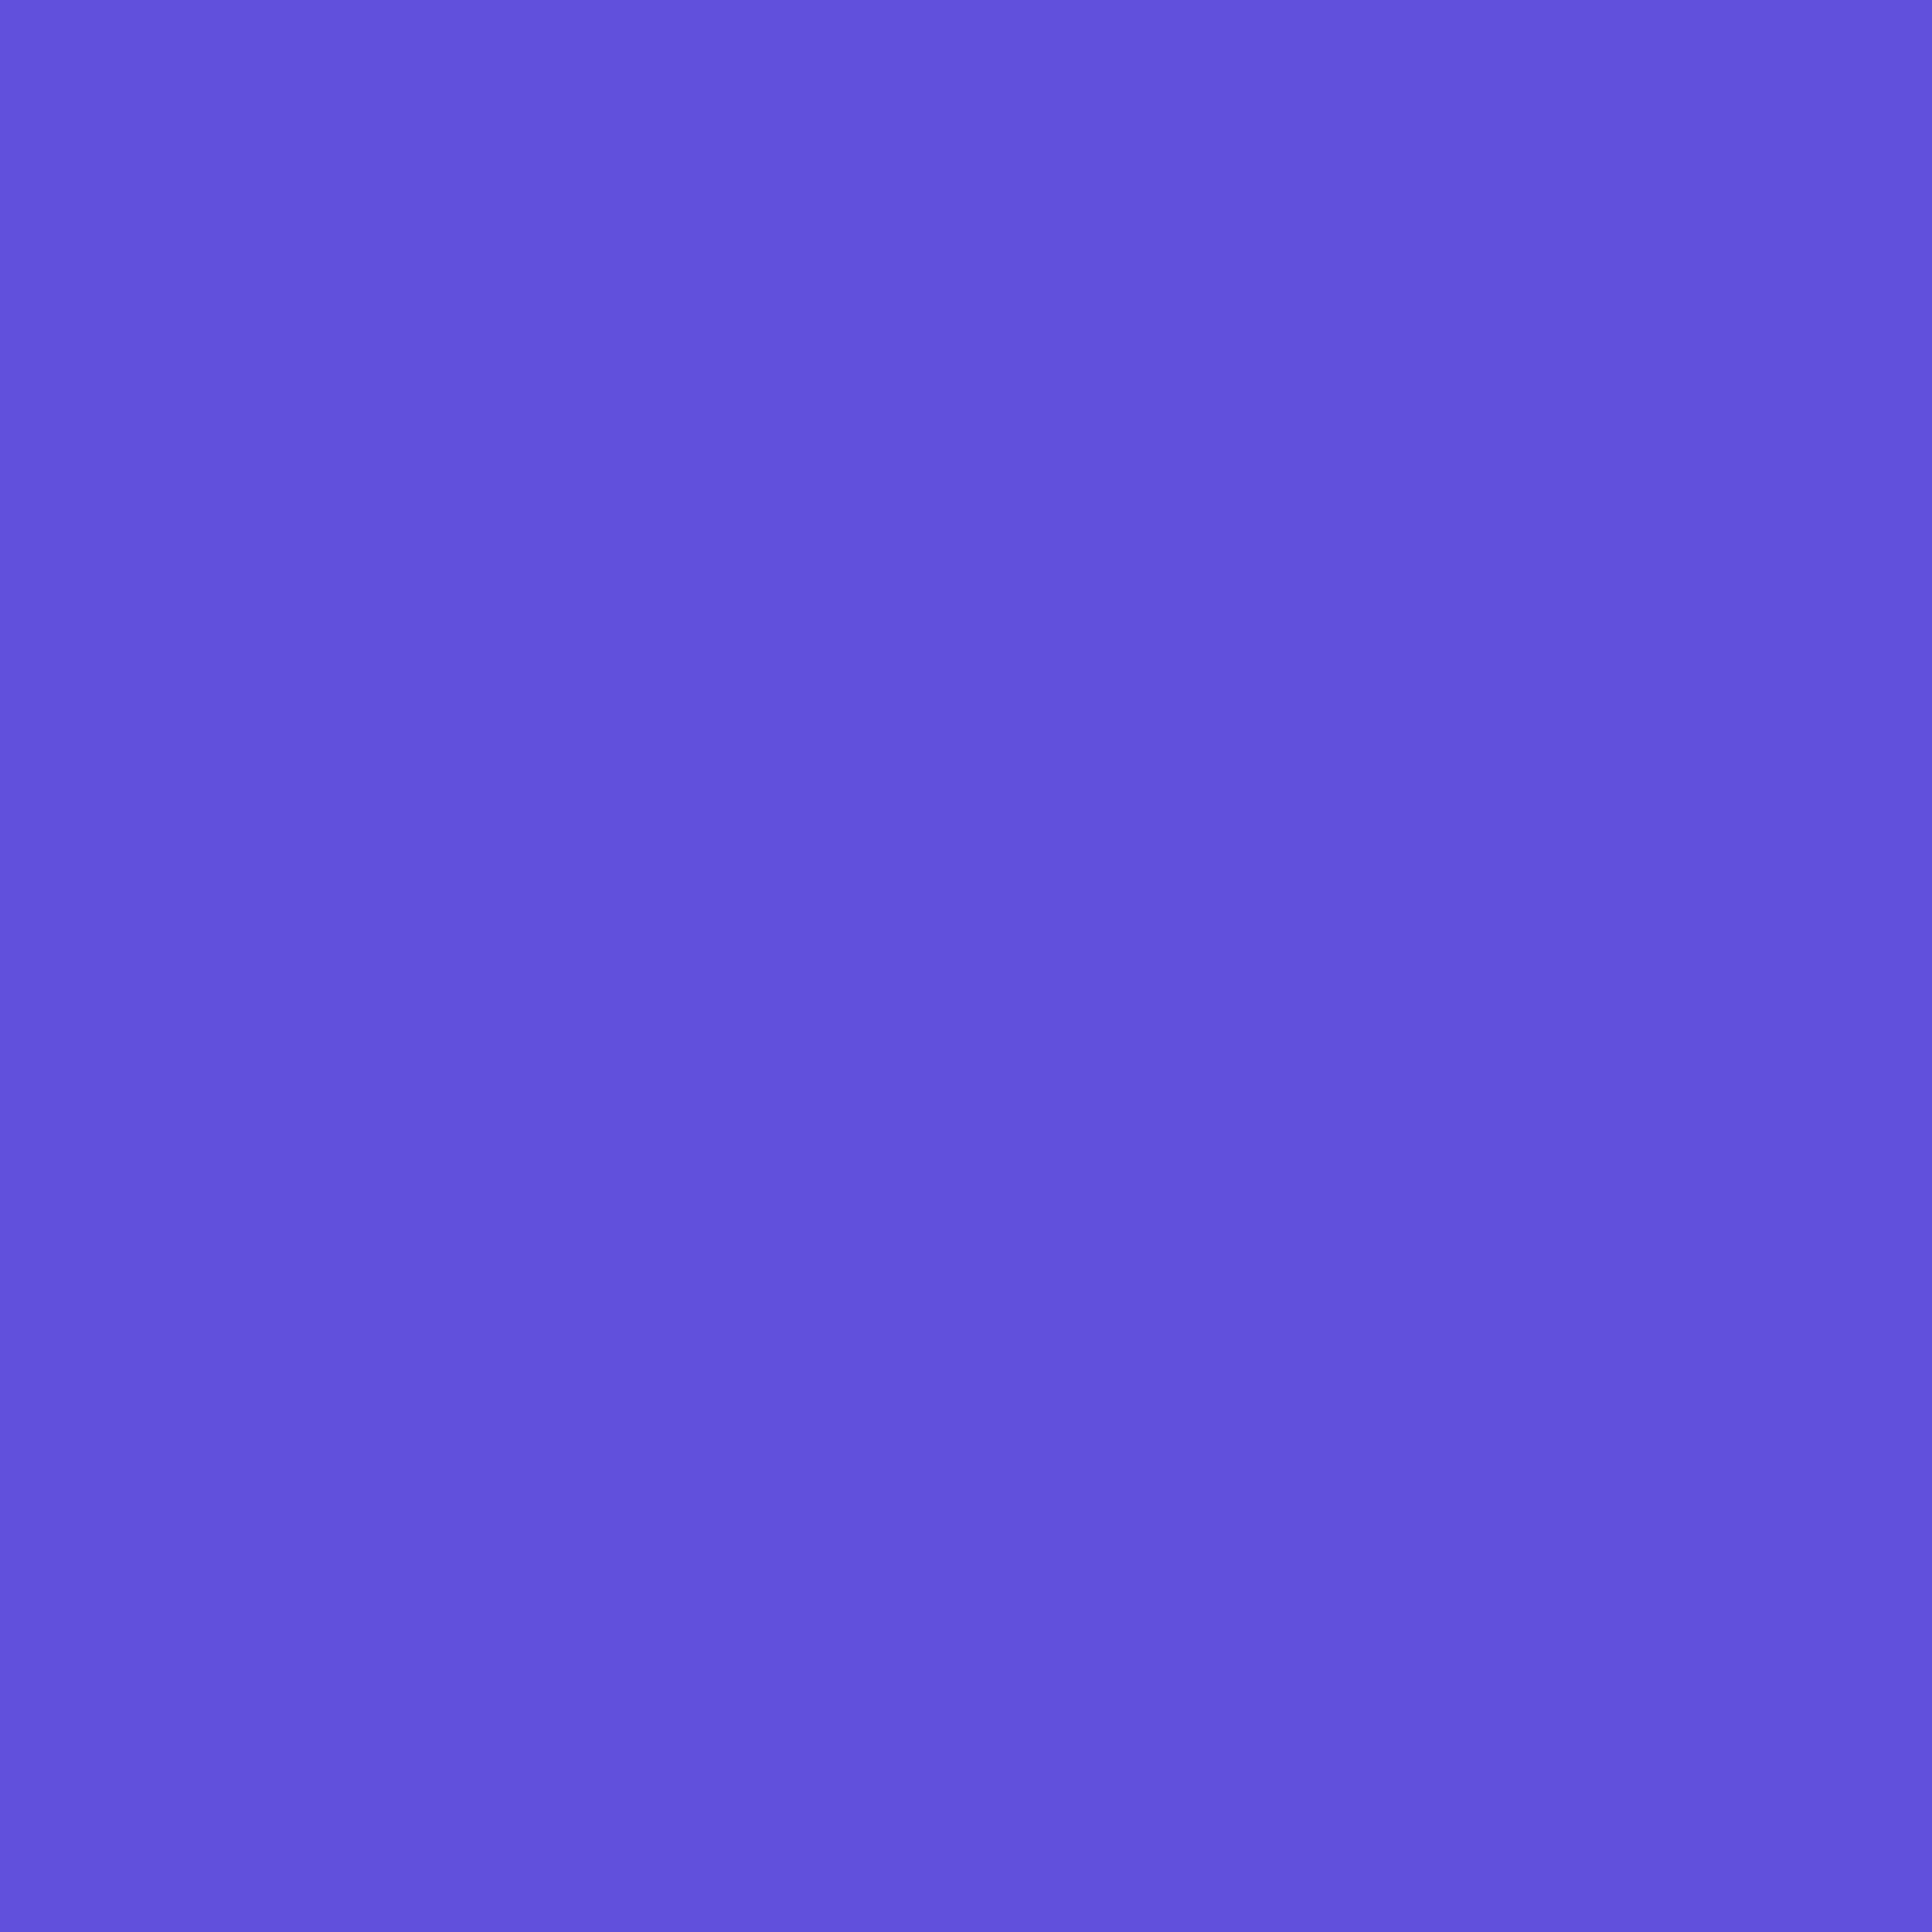 3600x3600 Majorelle Blue Solid Color Background